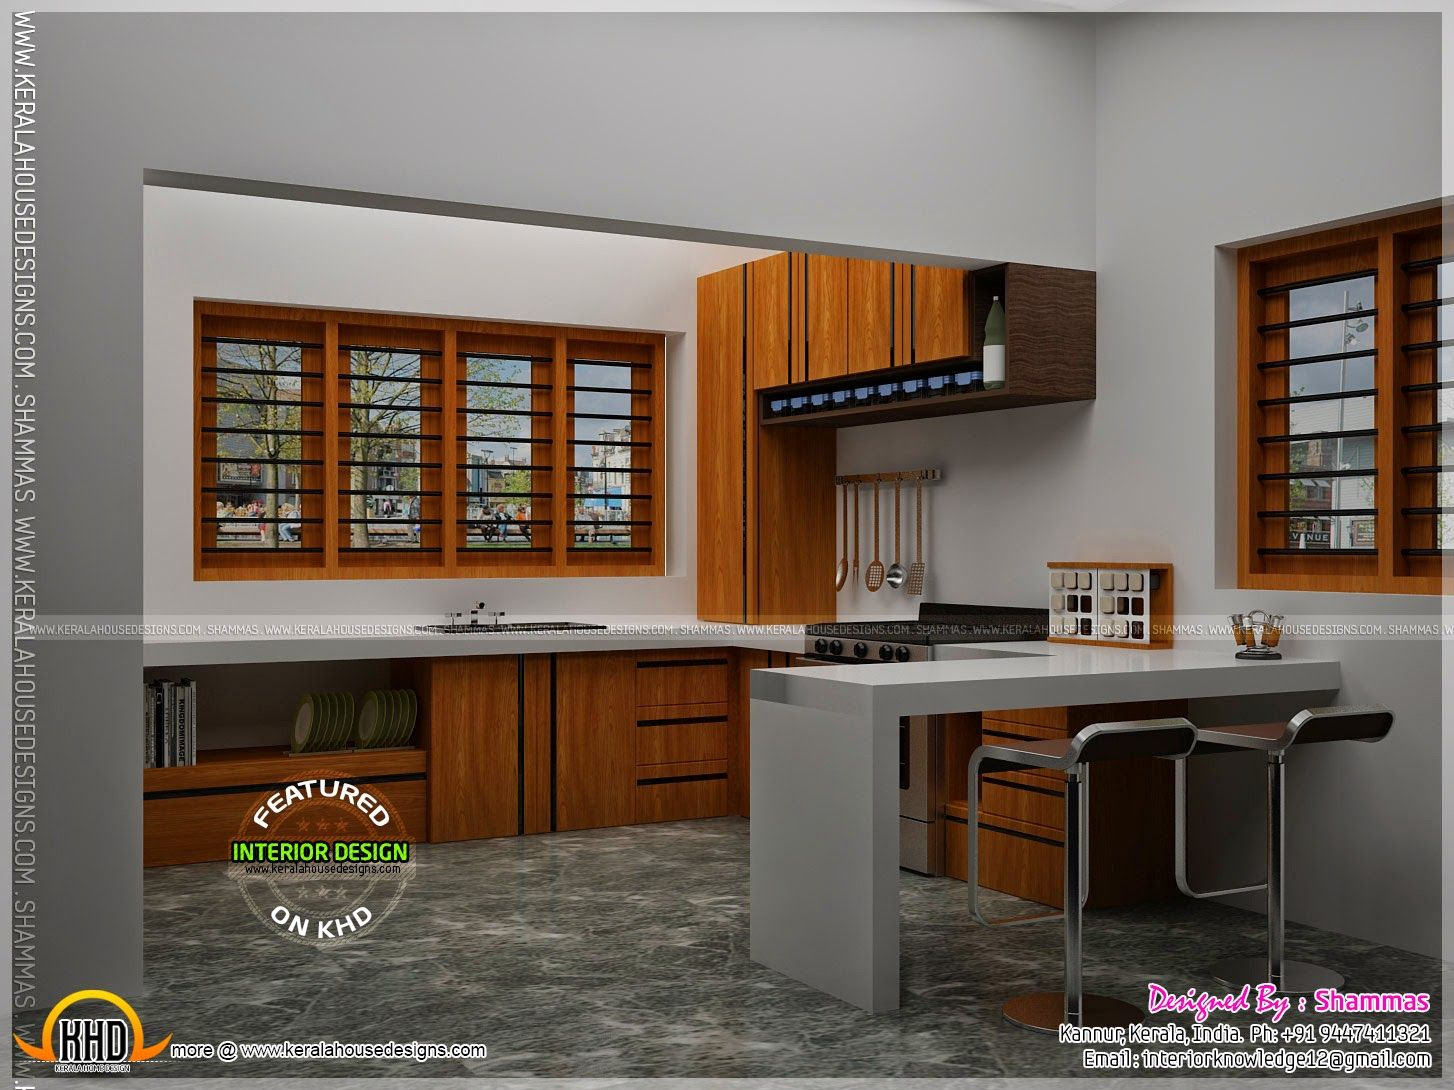 Kitchen design for indian style - Home Design Gallery Home Design Gallery Image On Beautiful Home Design Gallery 28 For Romantic Decorating